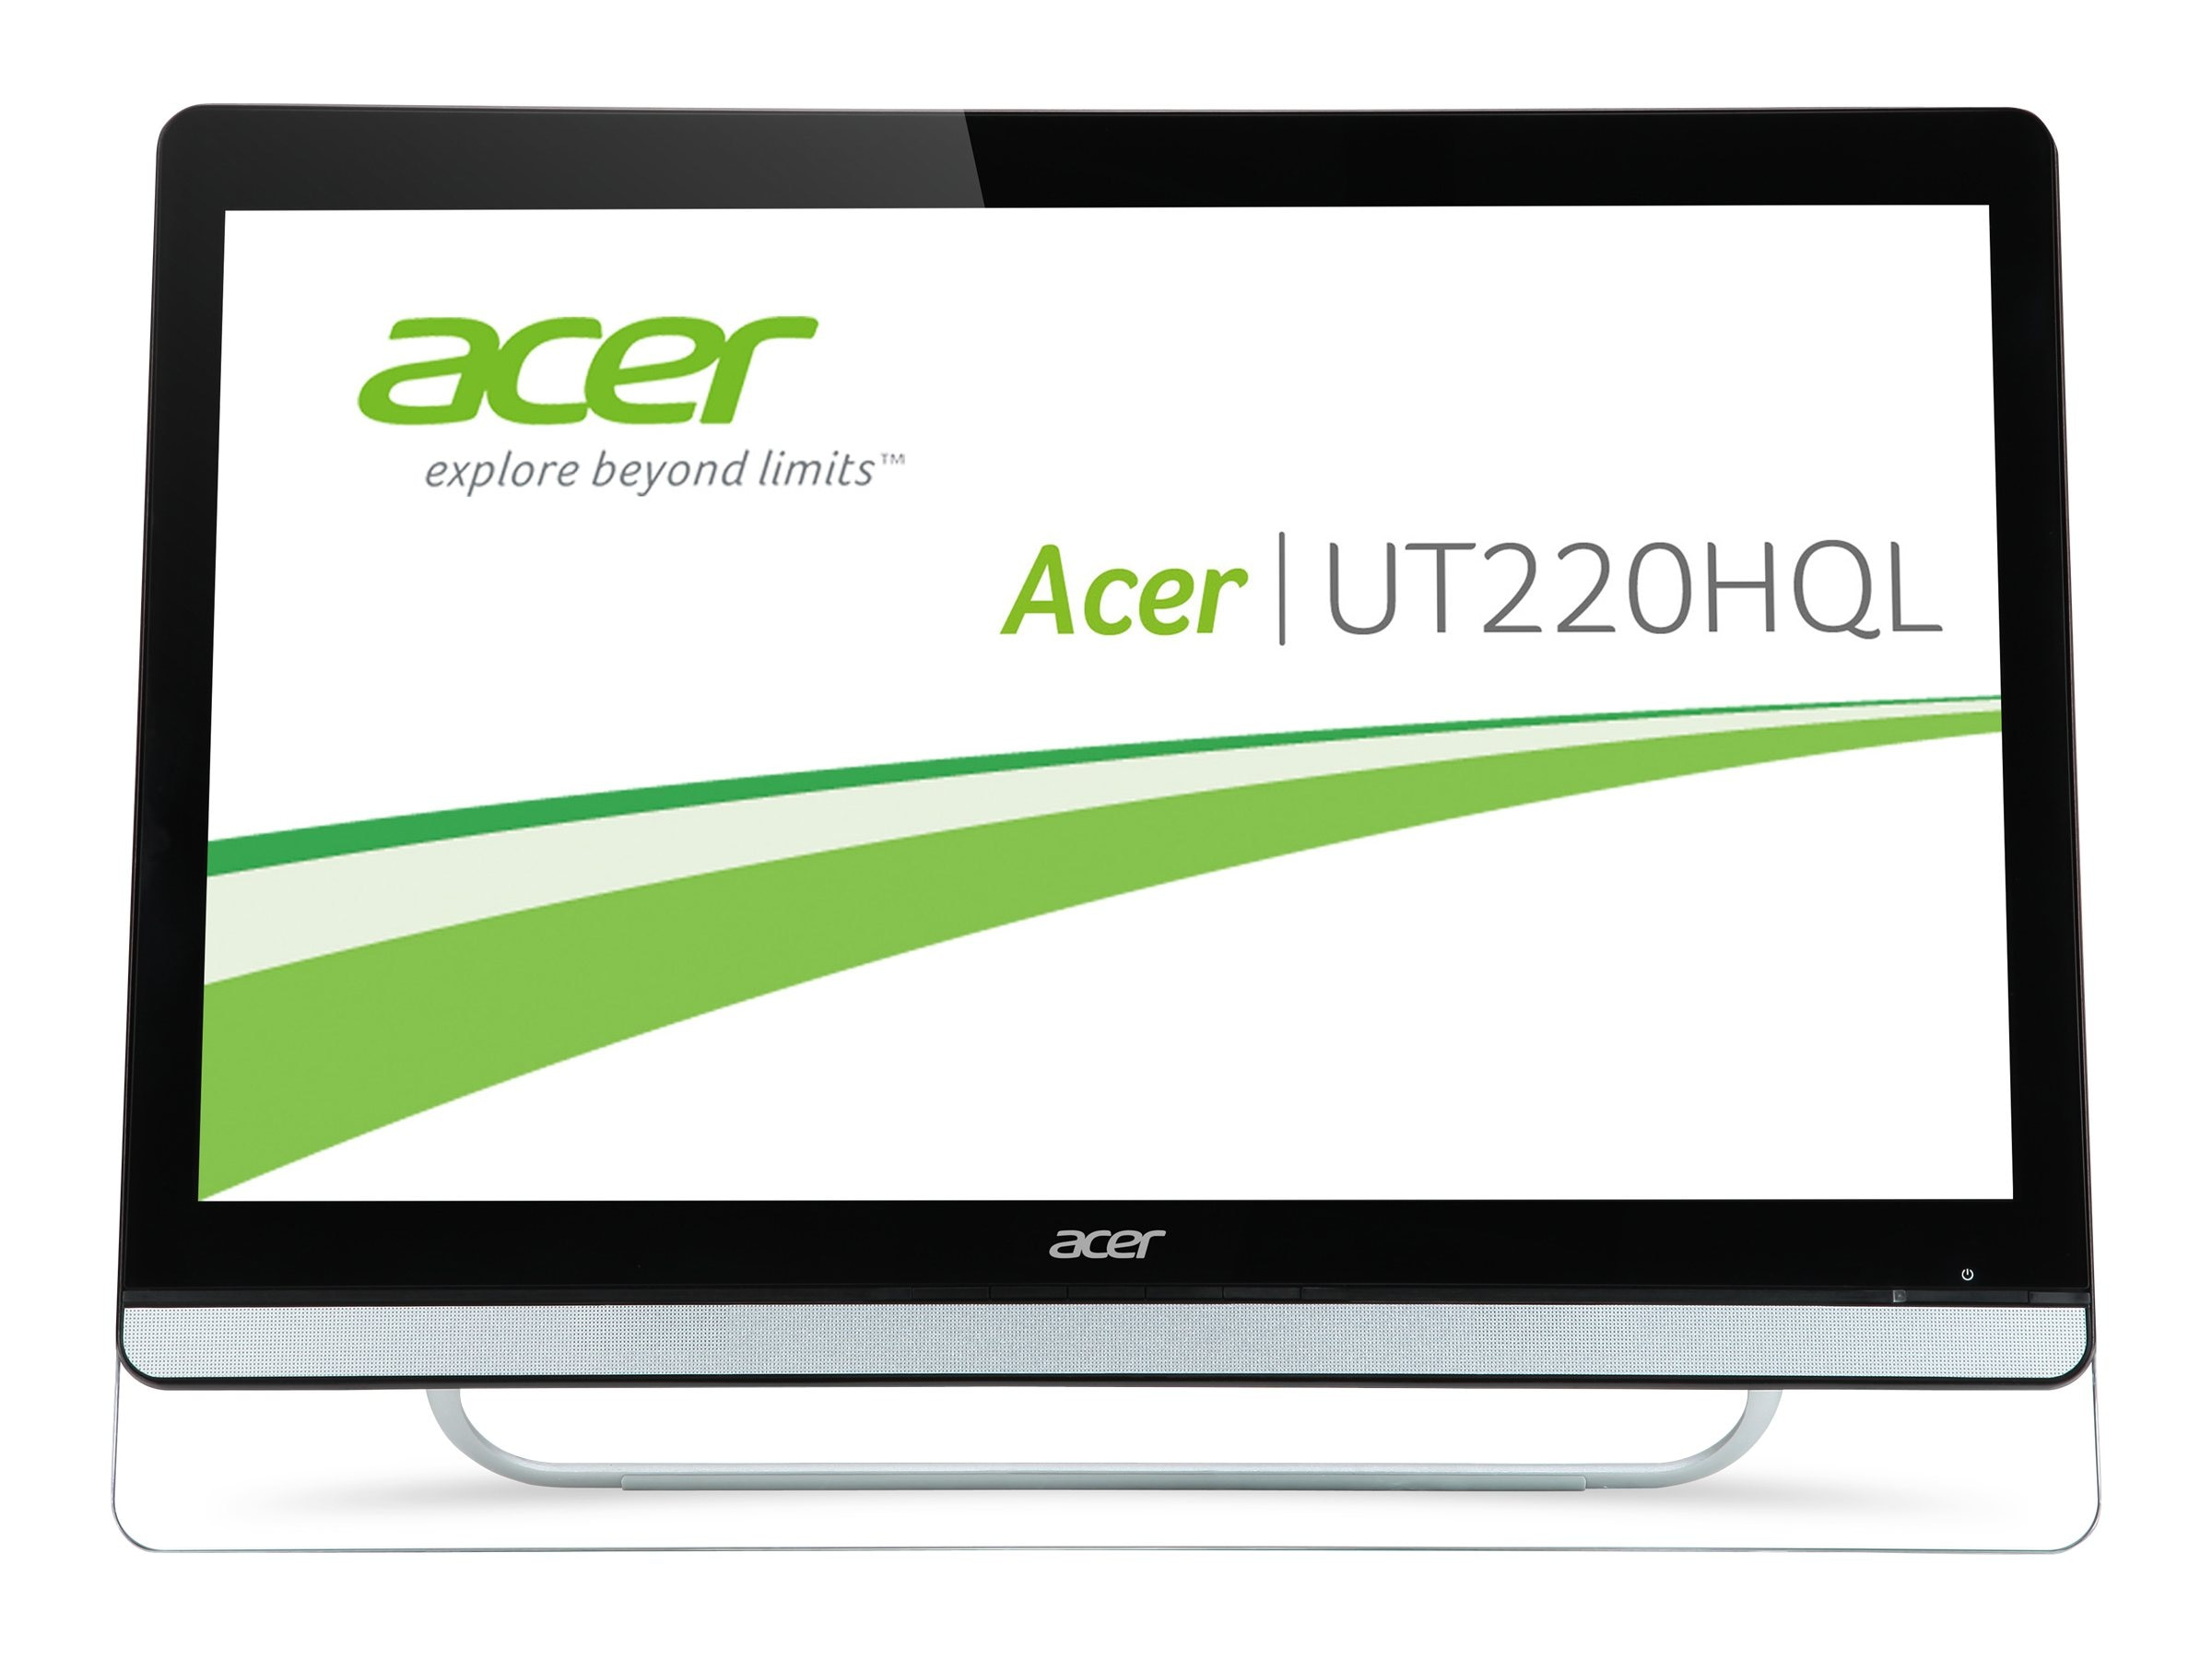 Acer 21.5 UT220HQL bmjz Full HD LED-LCD Touchscreen Display, Black, UM.WW0AA.004, 26830811, Monitors - LED-LCD